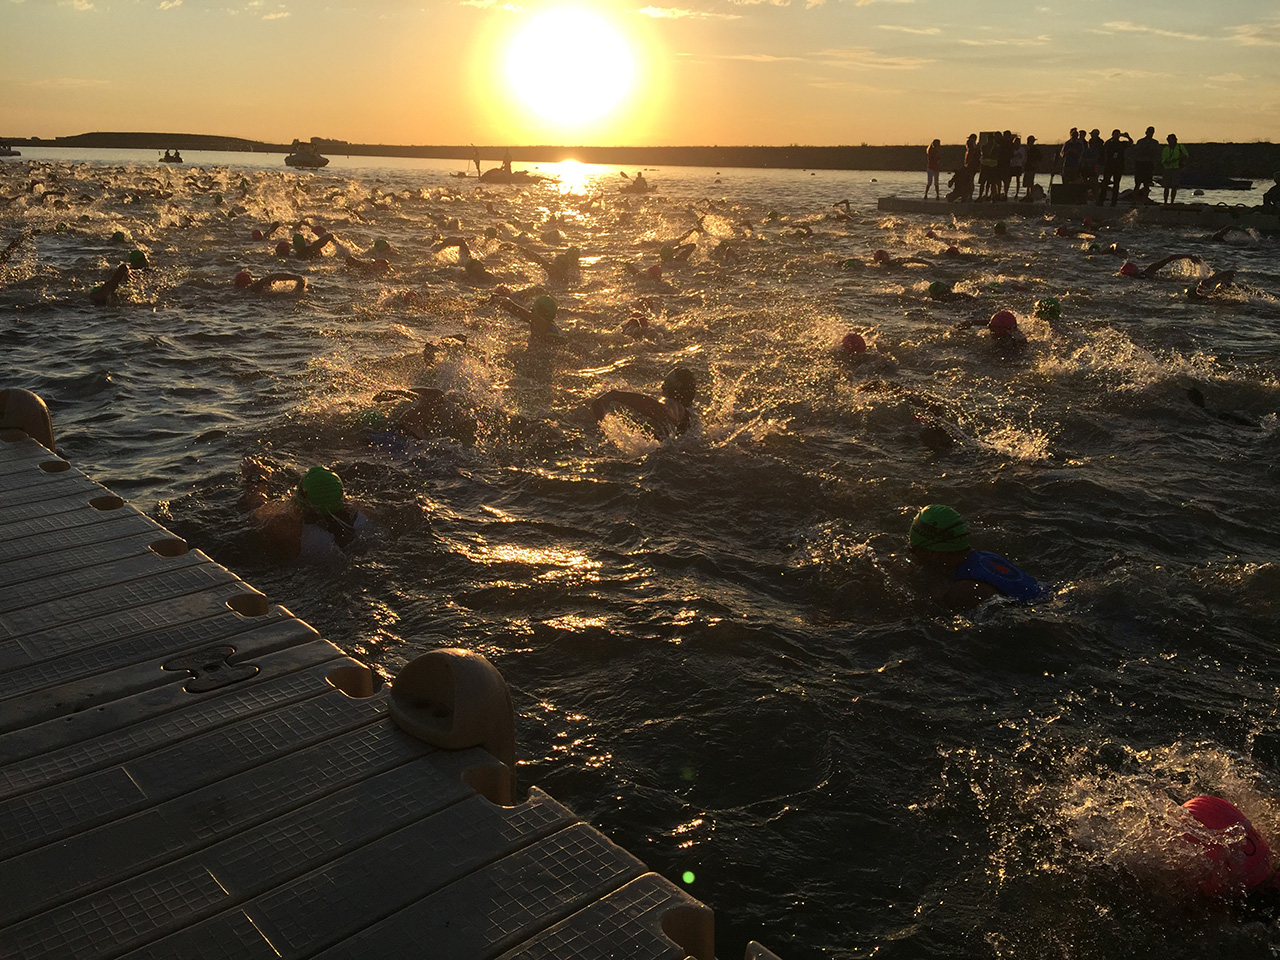 Boulder-Ironman-Swimming-1280x960.jpg